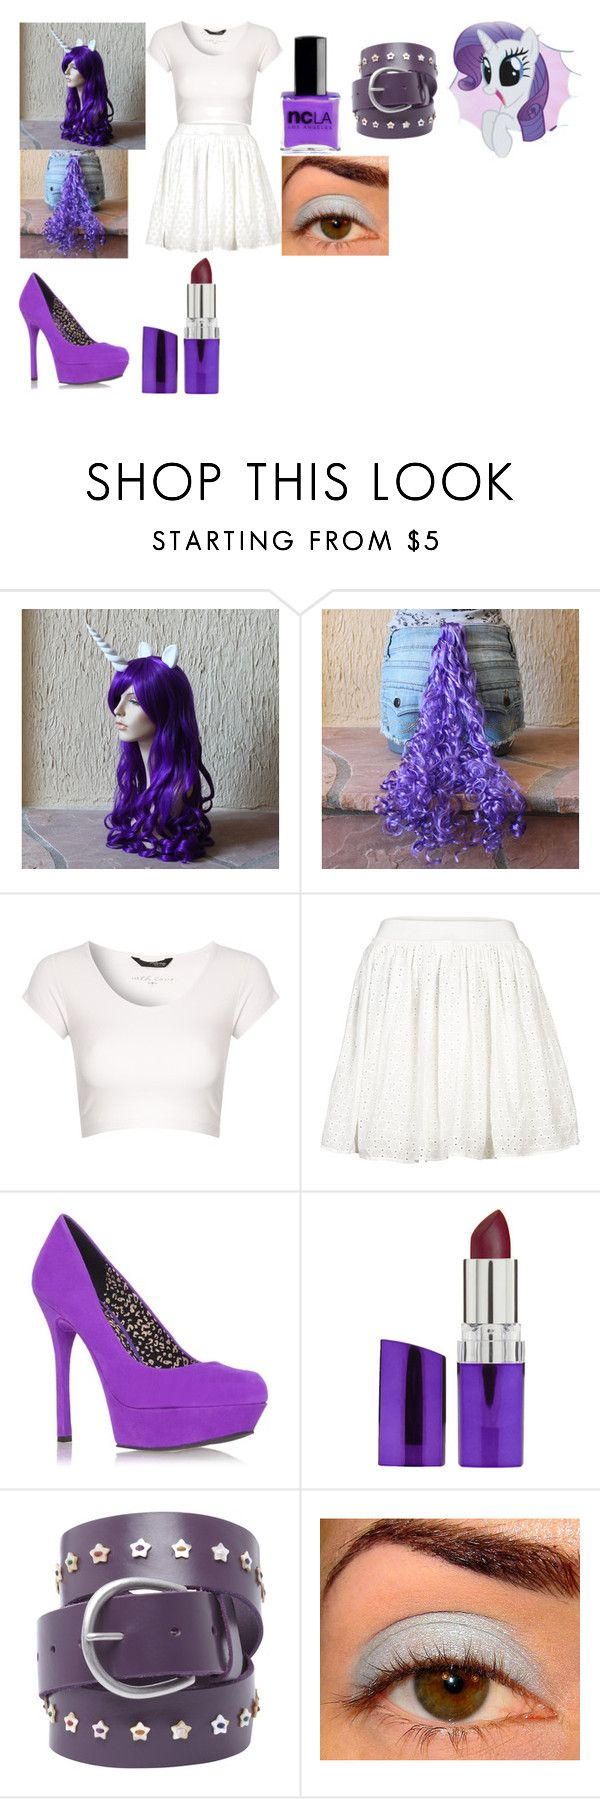 """my little pony rarity Halloween Costume"" by rockprincess-i ❤ liked on Polyvore featuring My Little Pony, Jane Norman, VILA, Jessica Simpson, Rimmel, White Stuff, women's clothing, women's fashion, women and female"